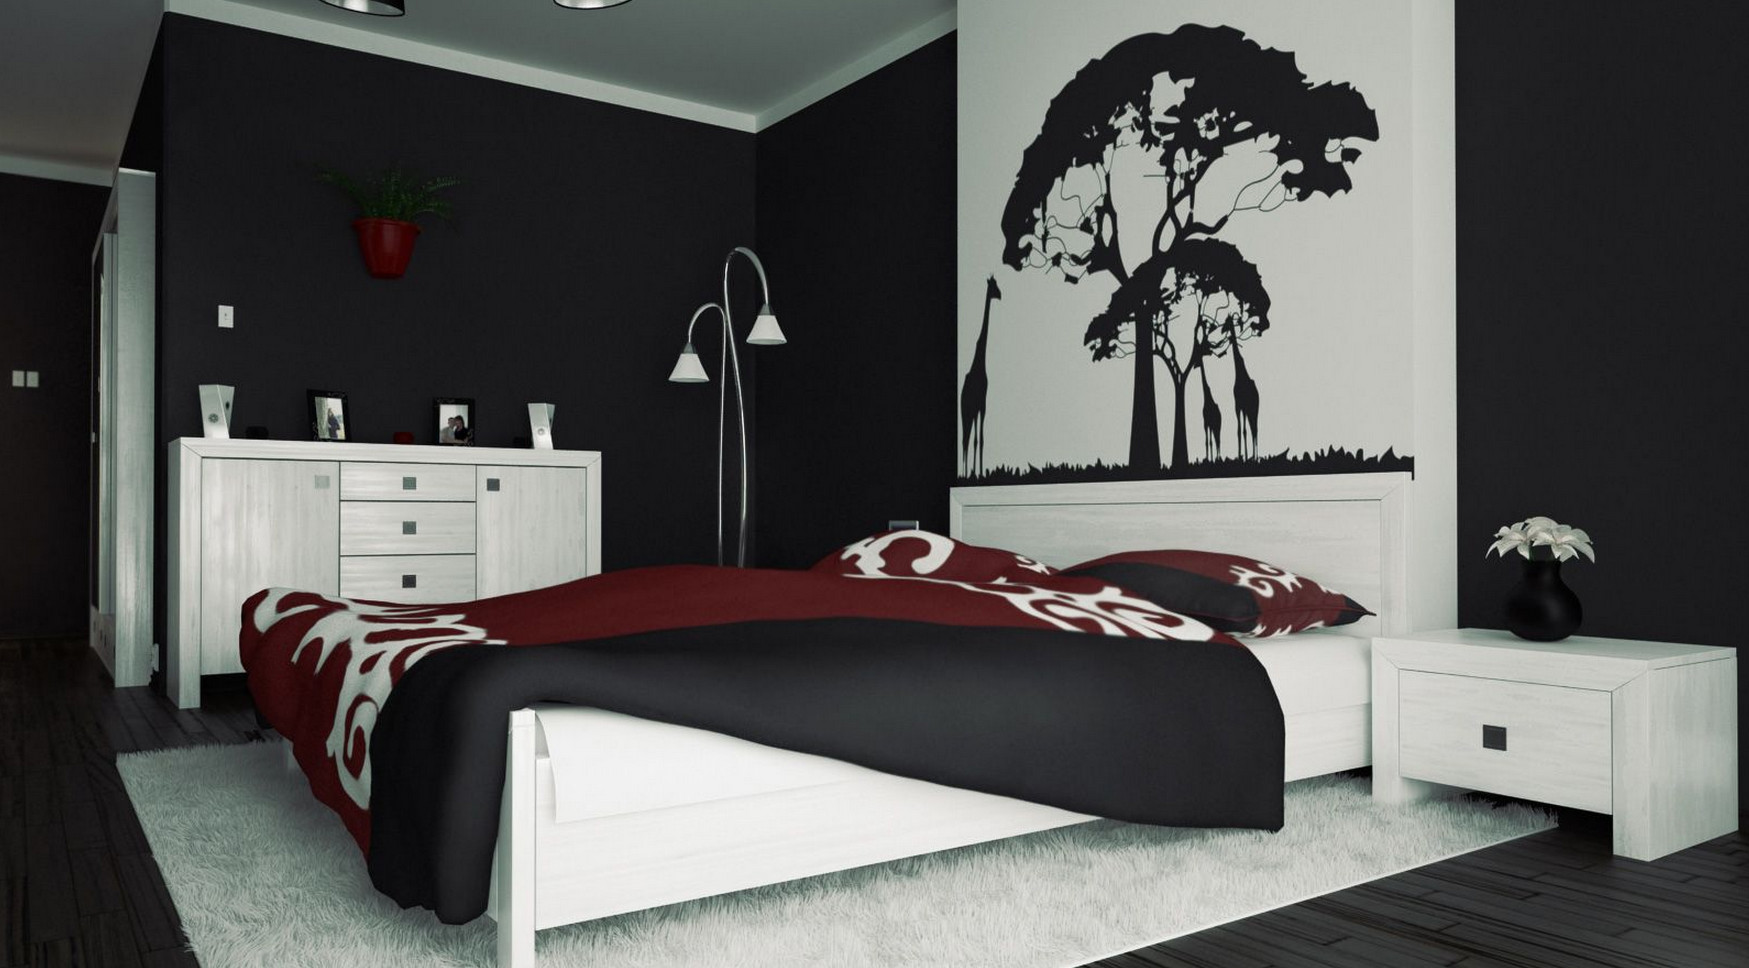 Red bedroom wall painting ideas Red bedroom wall painting ideas